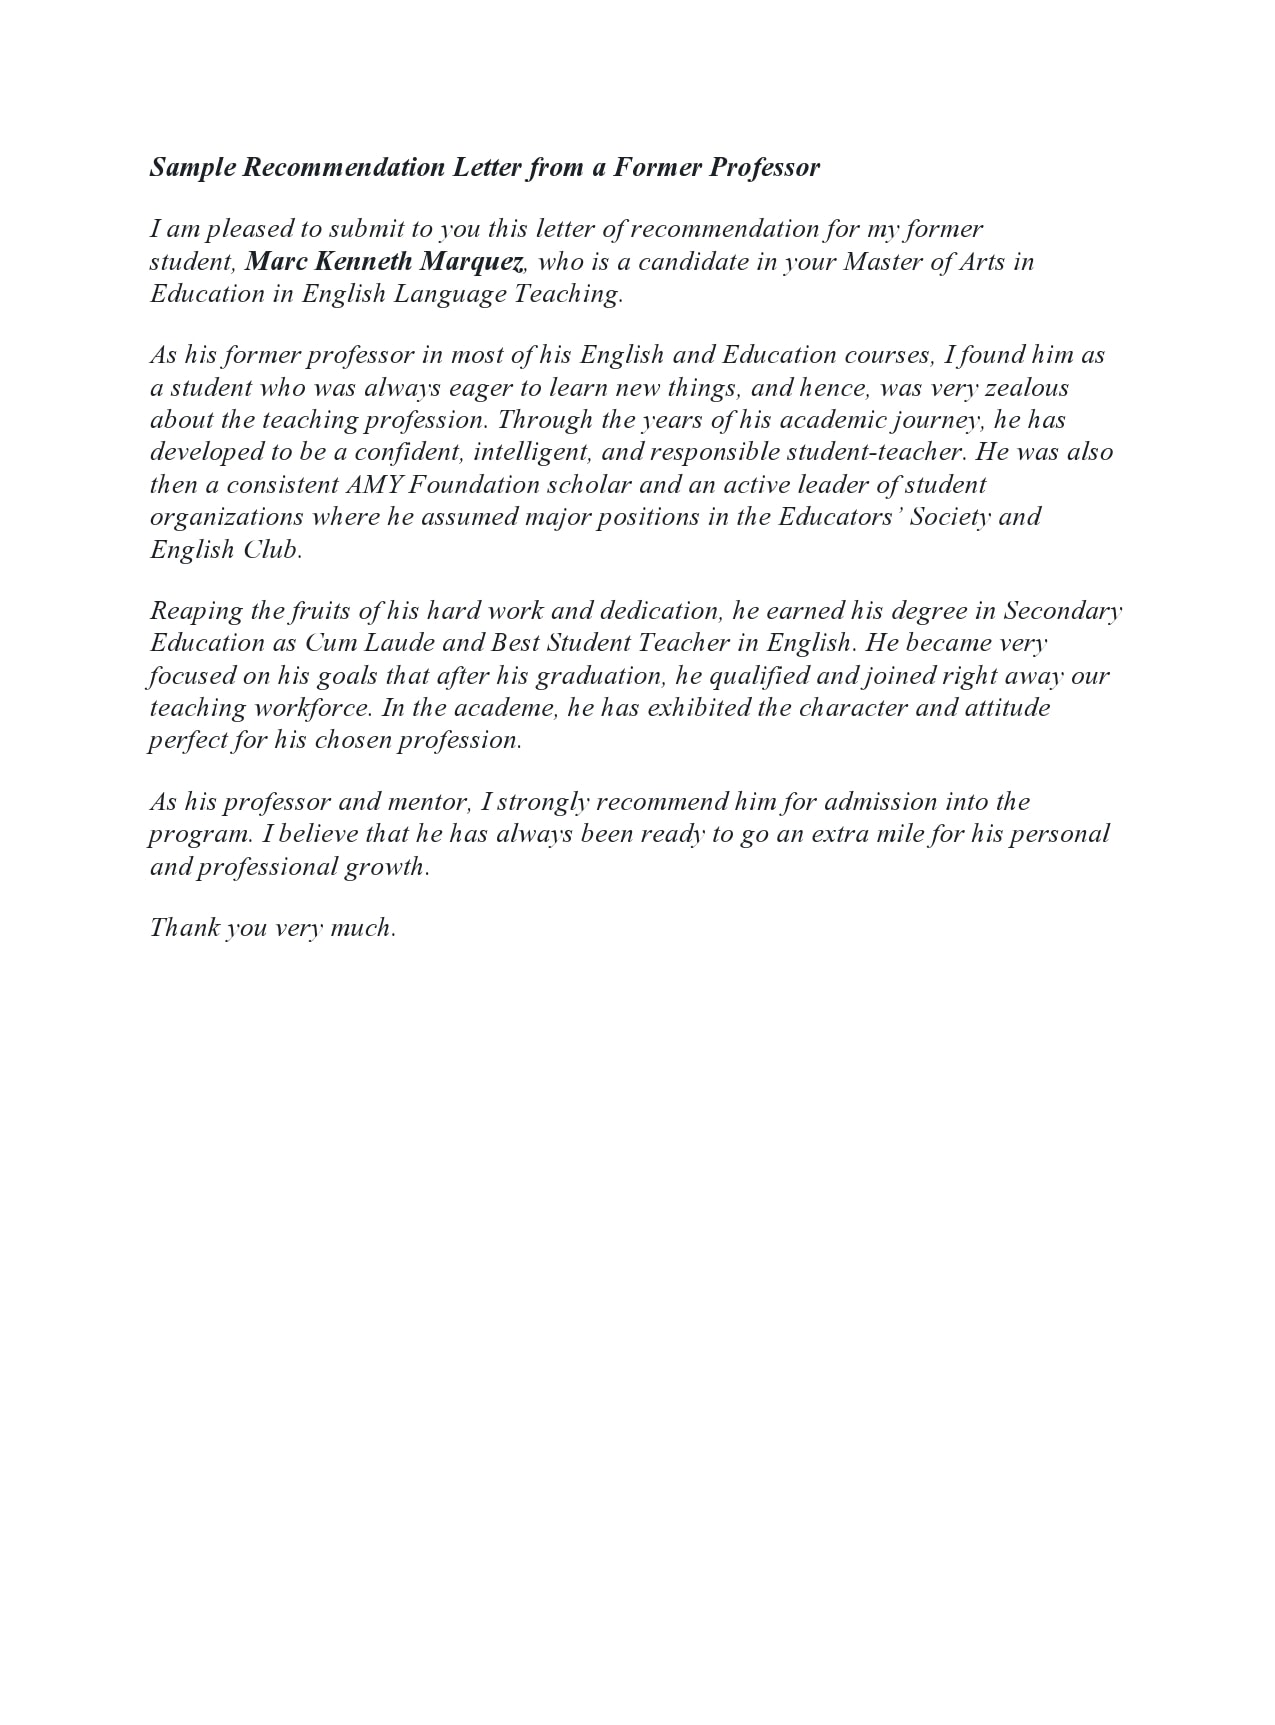 Recommendation Letter For Colleague Professor from templatearchive.com